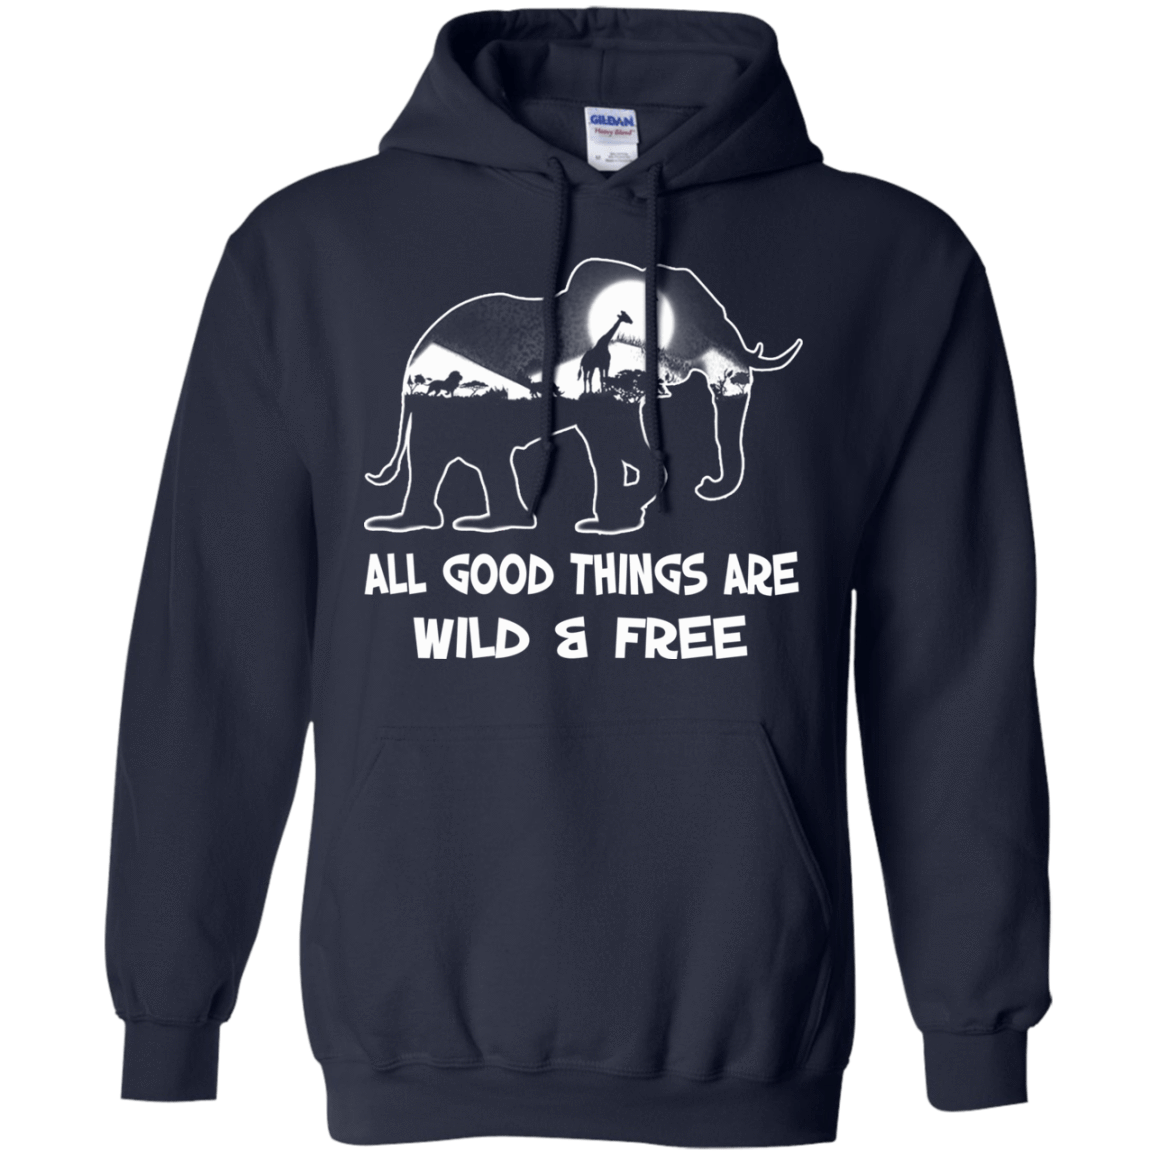 All Good Things Are Wild & Free 541-4742-72772260-23135 - Tee Ript